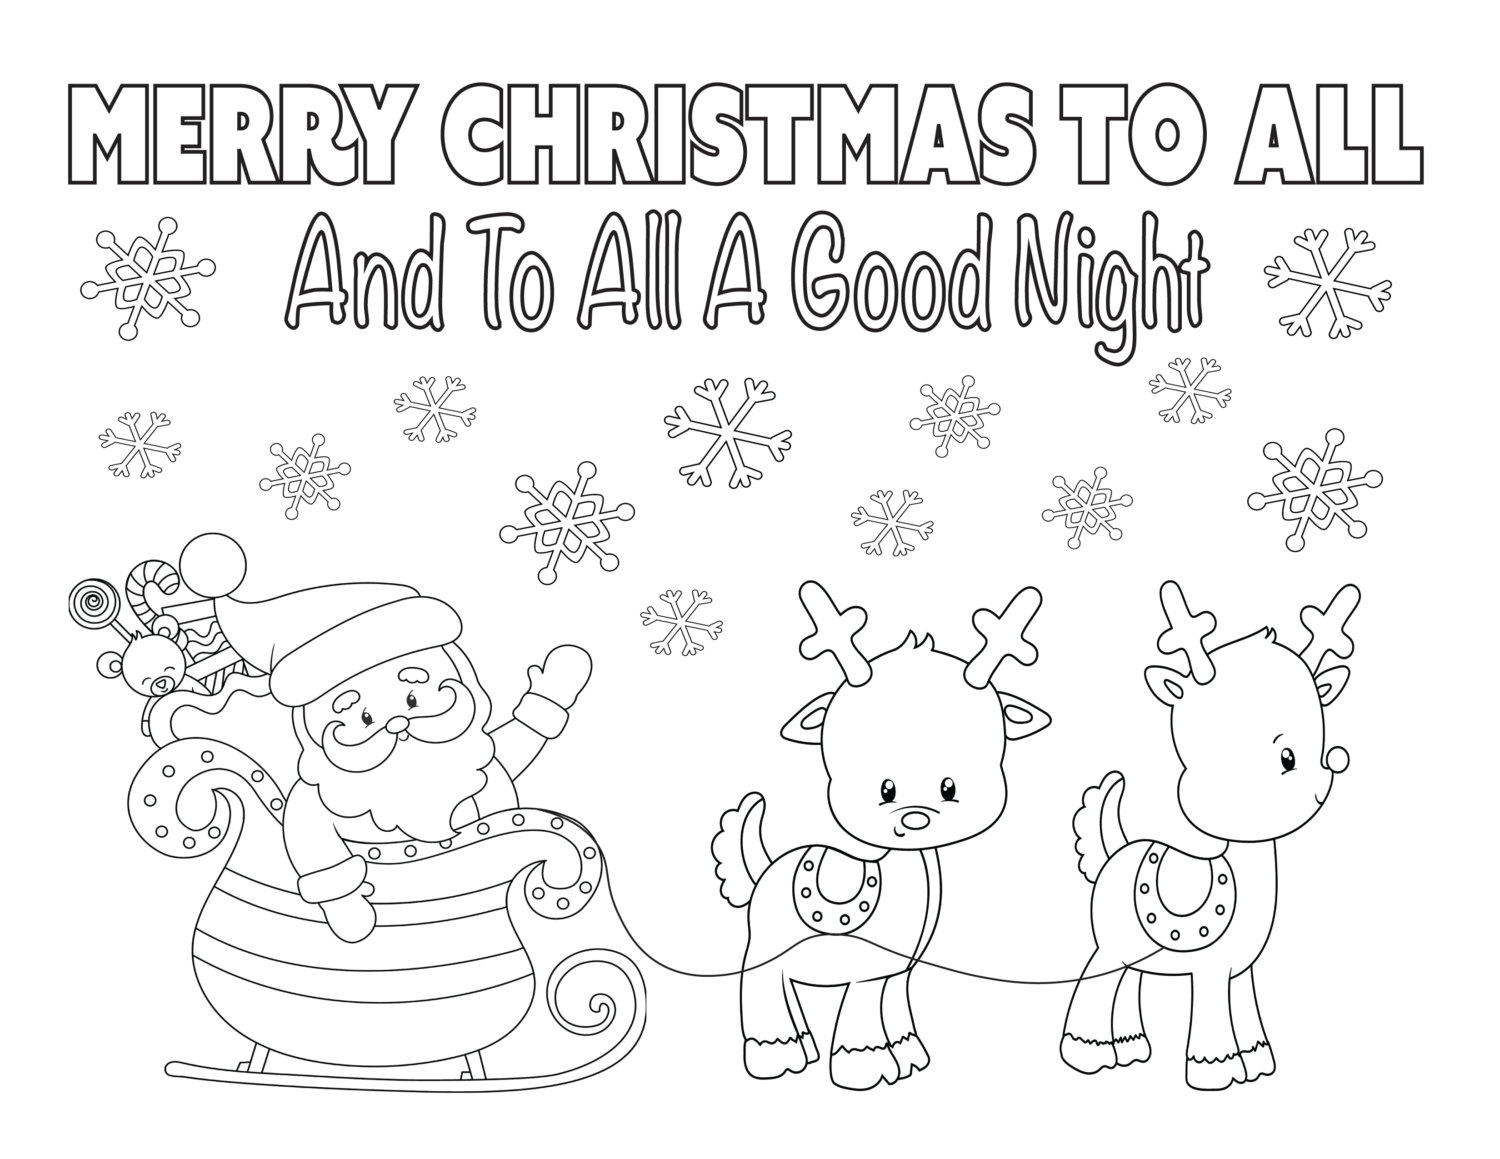 Australian Santa Coloring Page With Christmas 8 5x11 Instant Download Printable Etsy